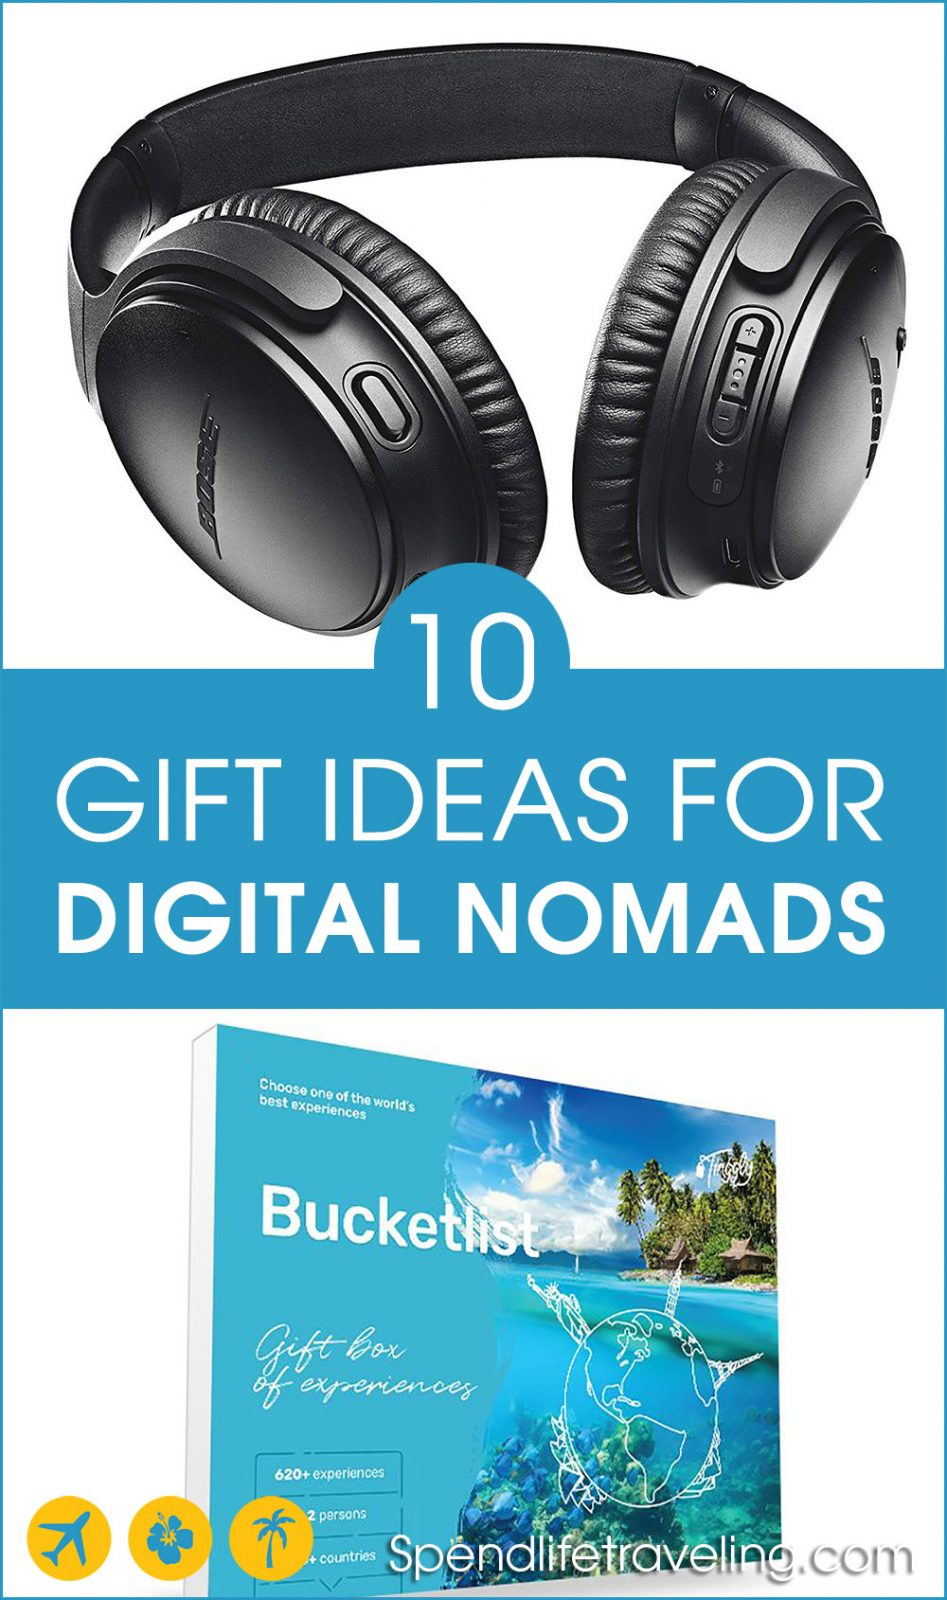 10 gift ideas for digital nomads, business travelers and travel lovers